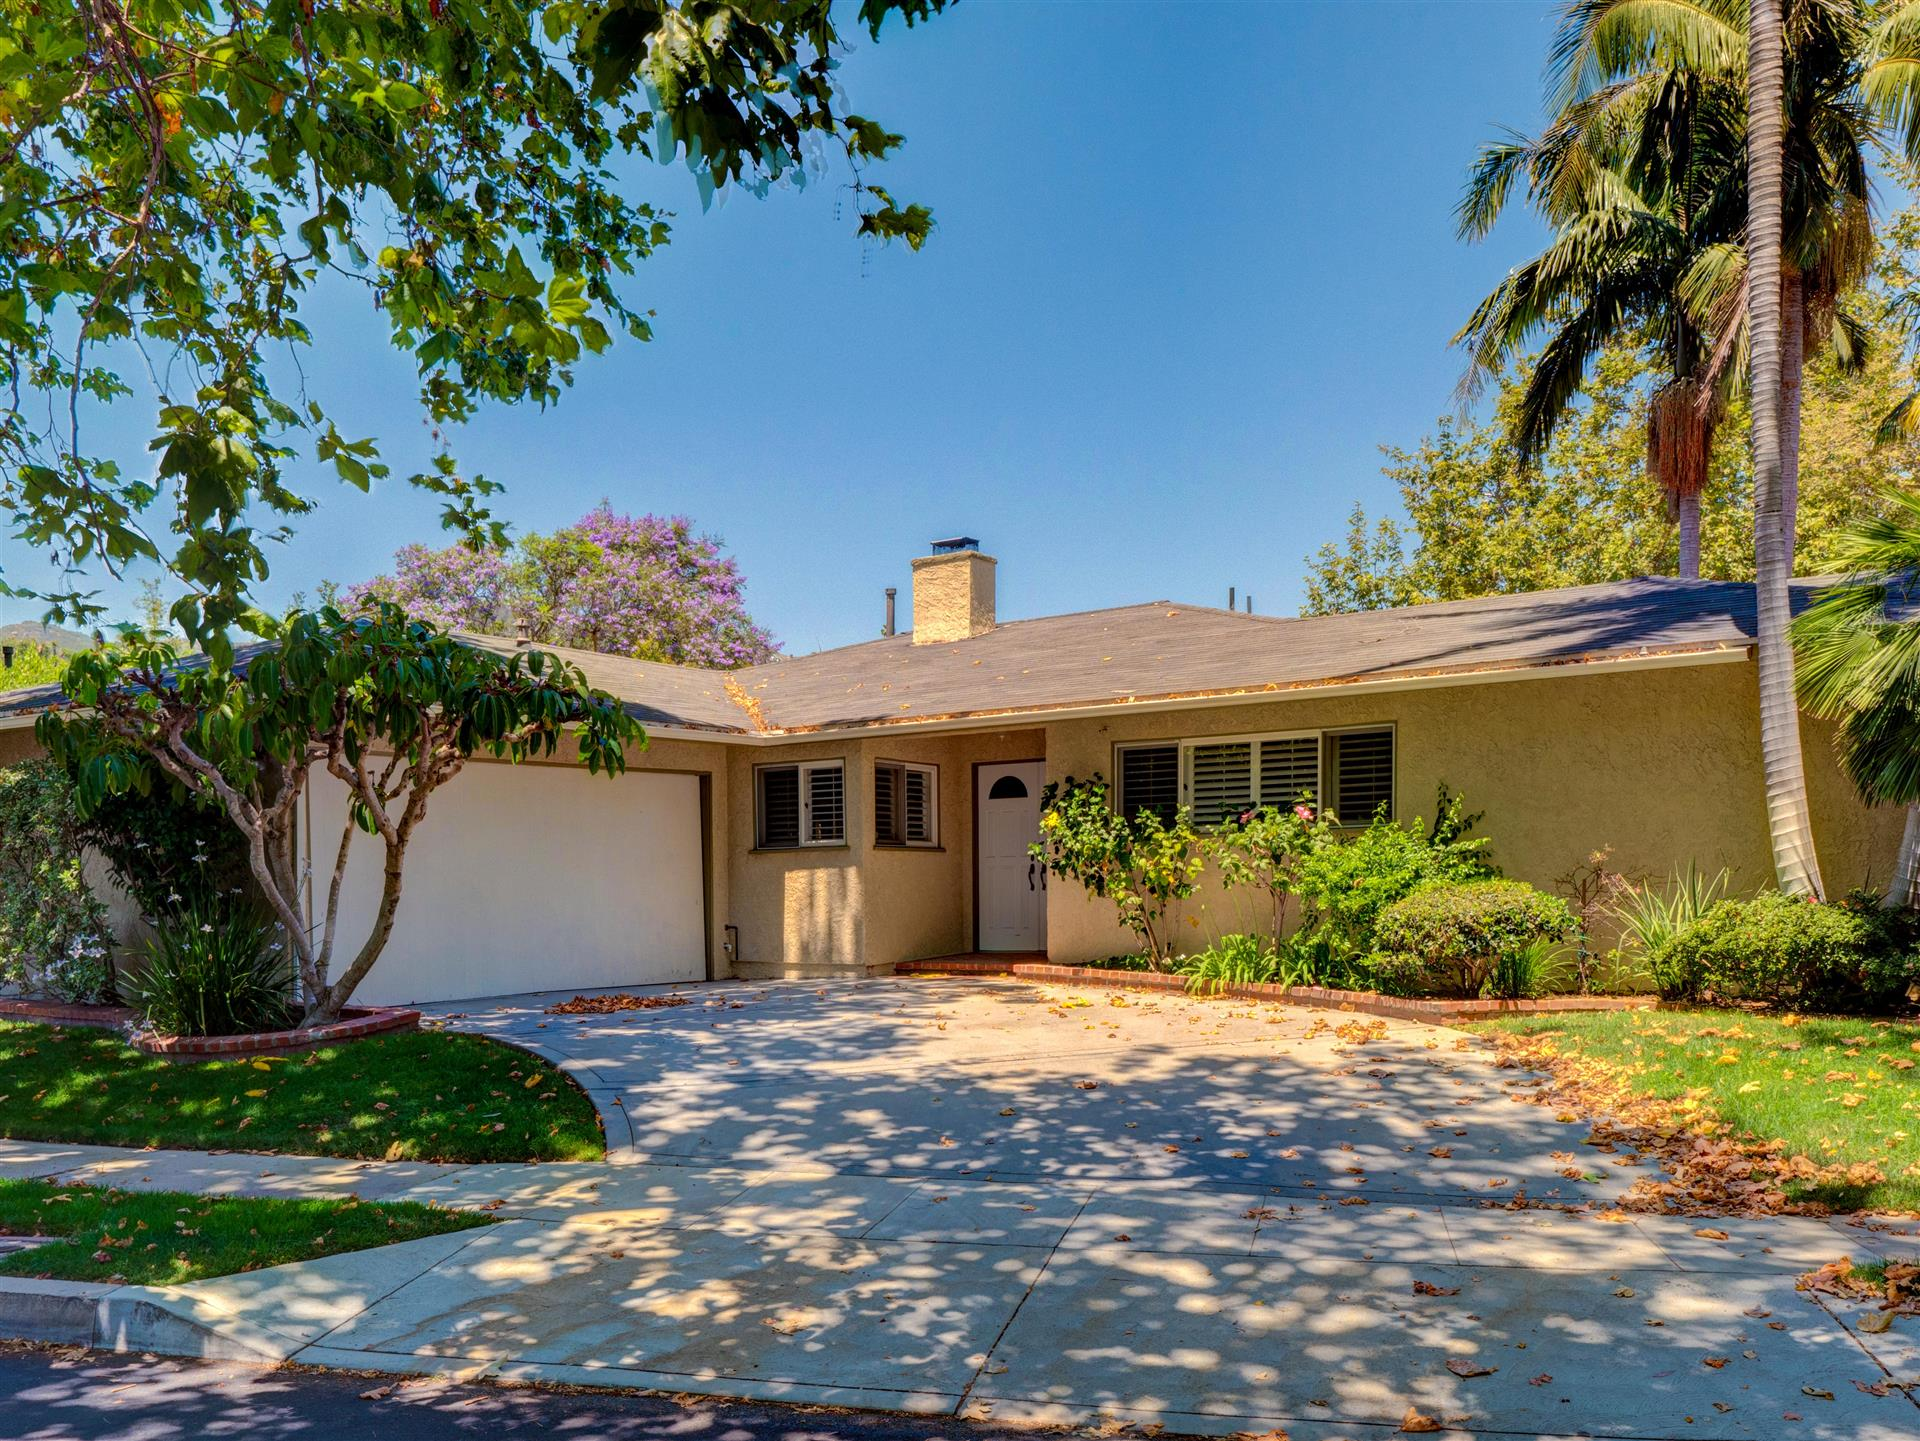 16301 Akron,Pacific Palisades,California 90272,3 Bedrooms Bedrooms,2 BathroomsBathrooms,Home,Akron,1052